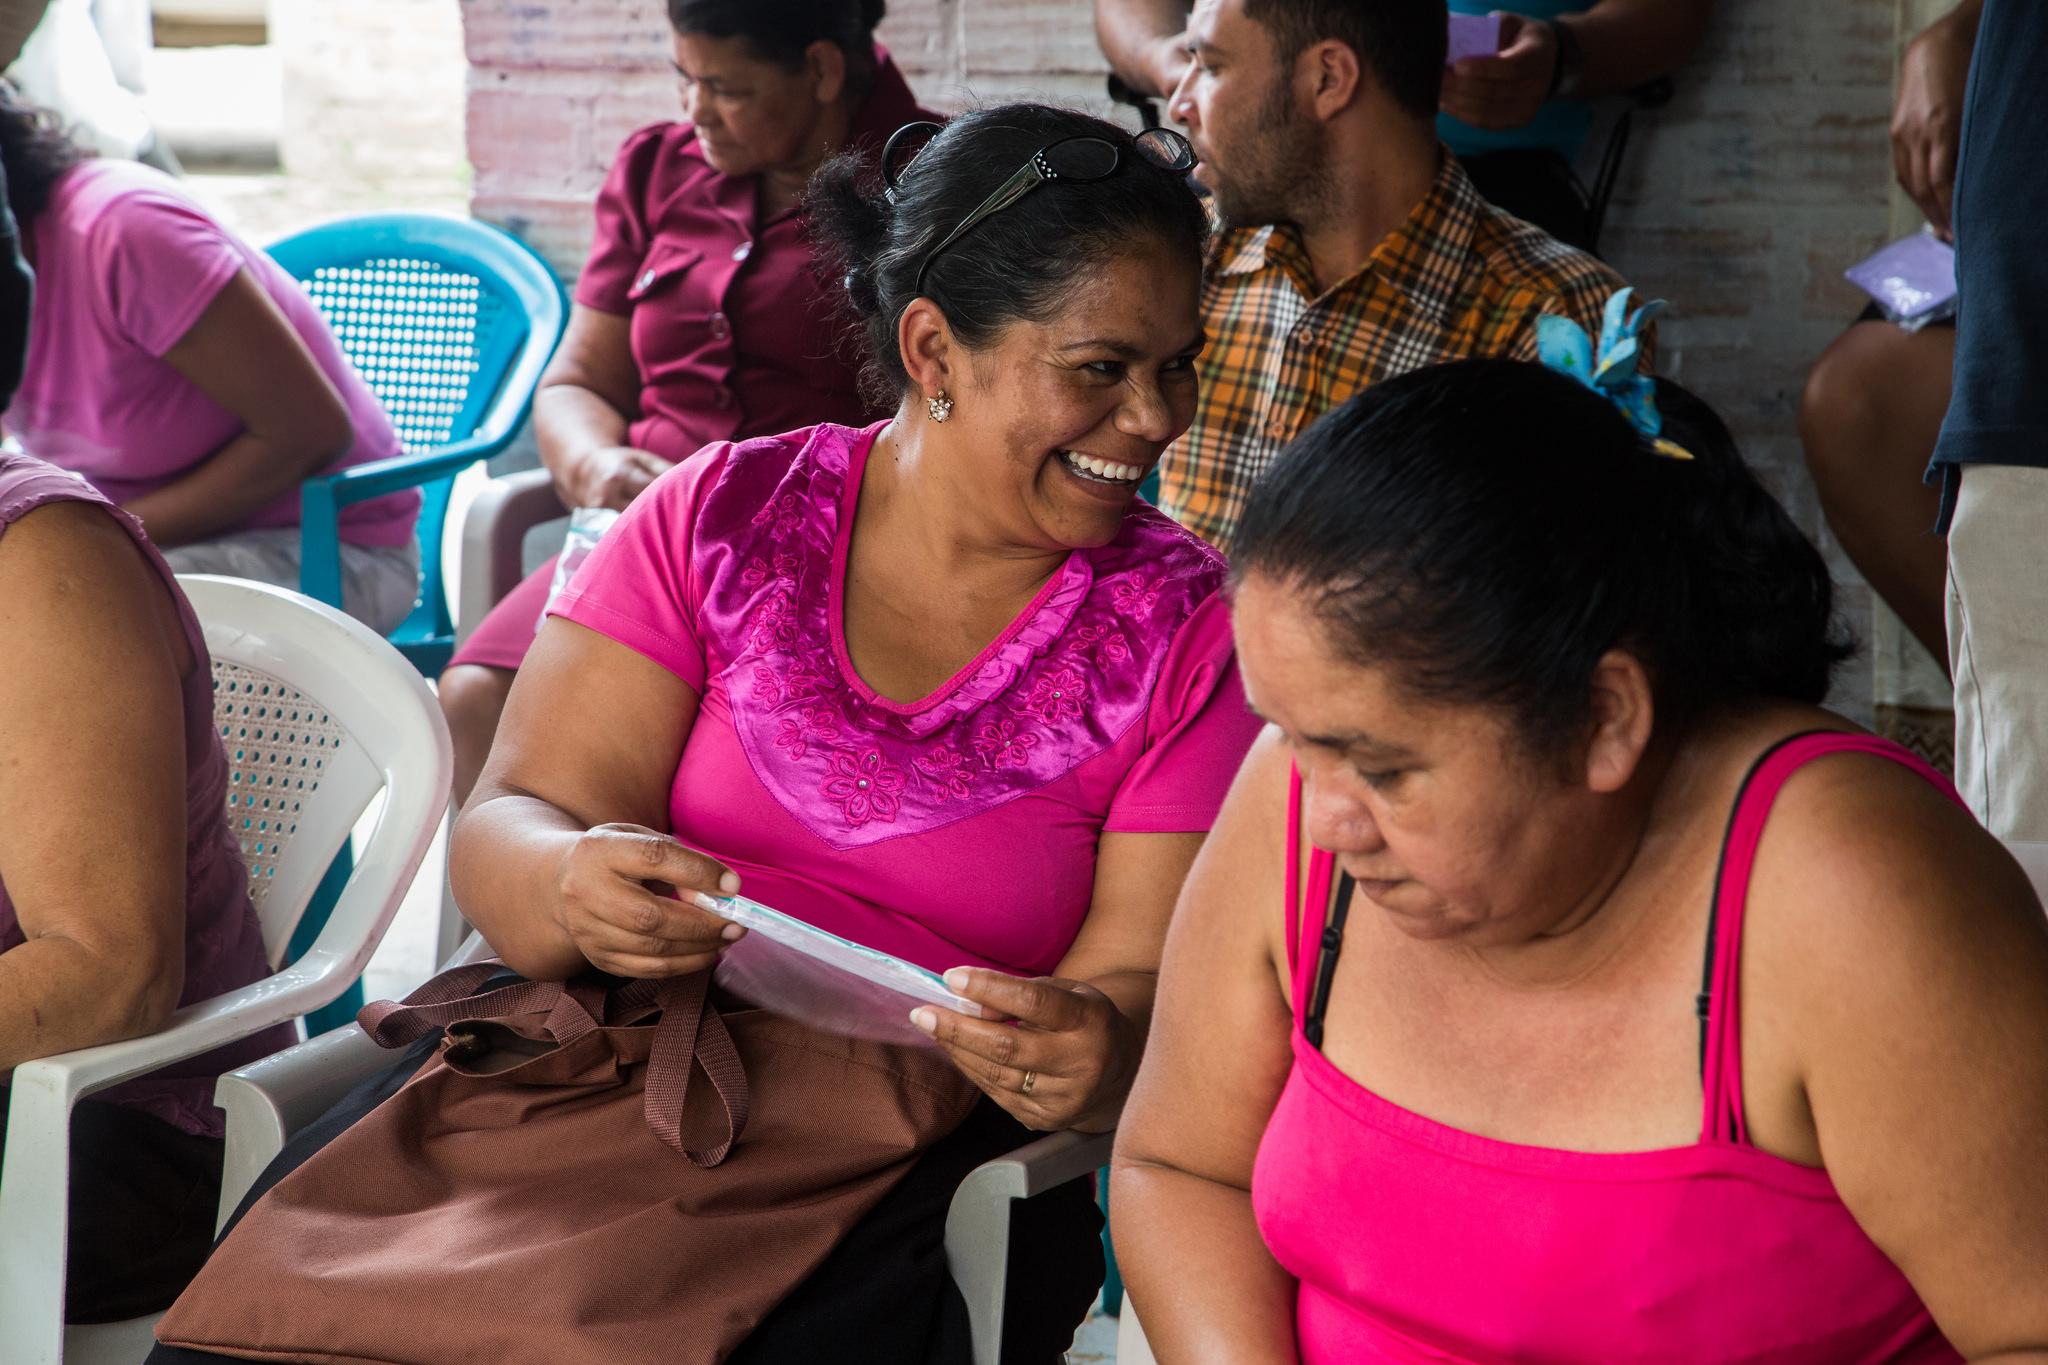 A Honduran woman farmer in a magenta shirt laughs to an unseen companion while holding a strip of white paper. She is surrounded by other farmers seated in plastic chairs during an index insurance game session in southern Honduras.